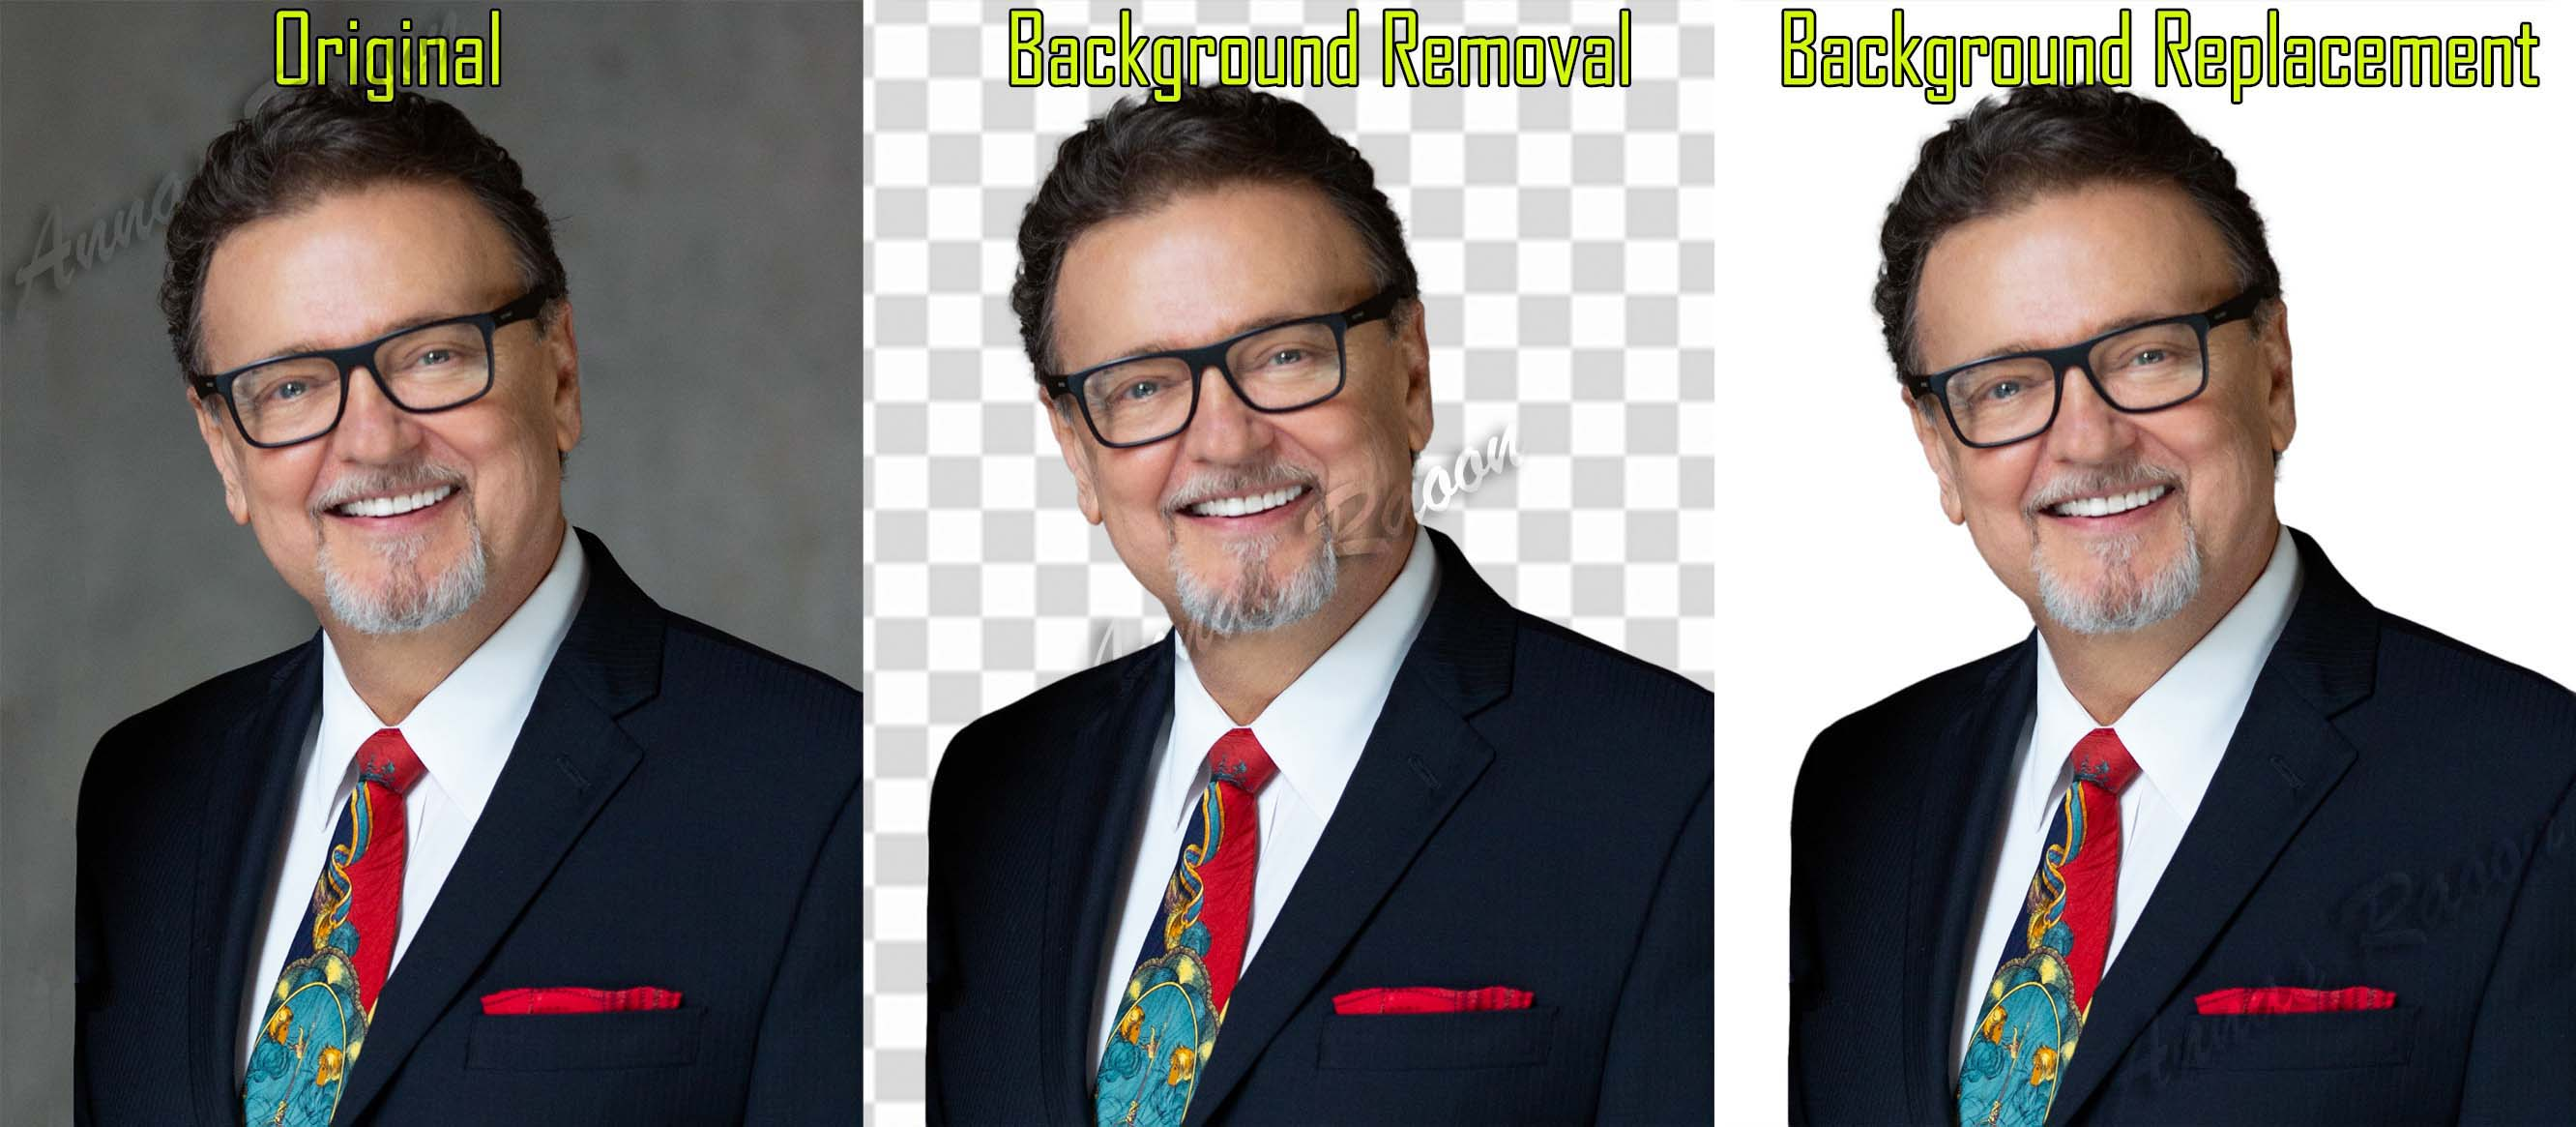 15 Images Background Removal Professionally in 24 hours